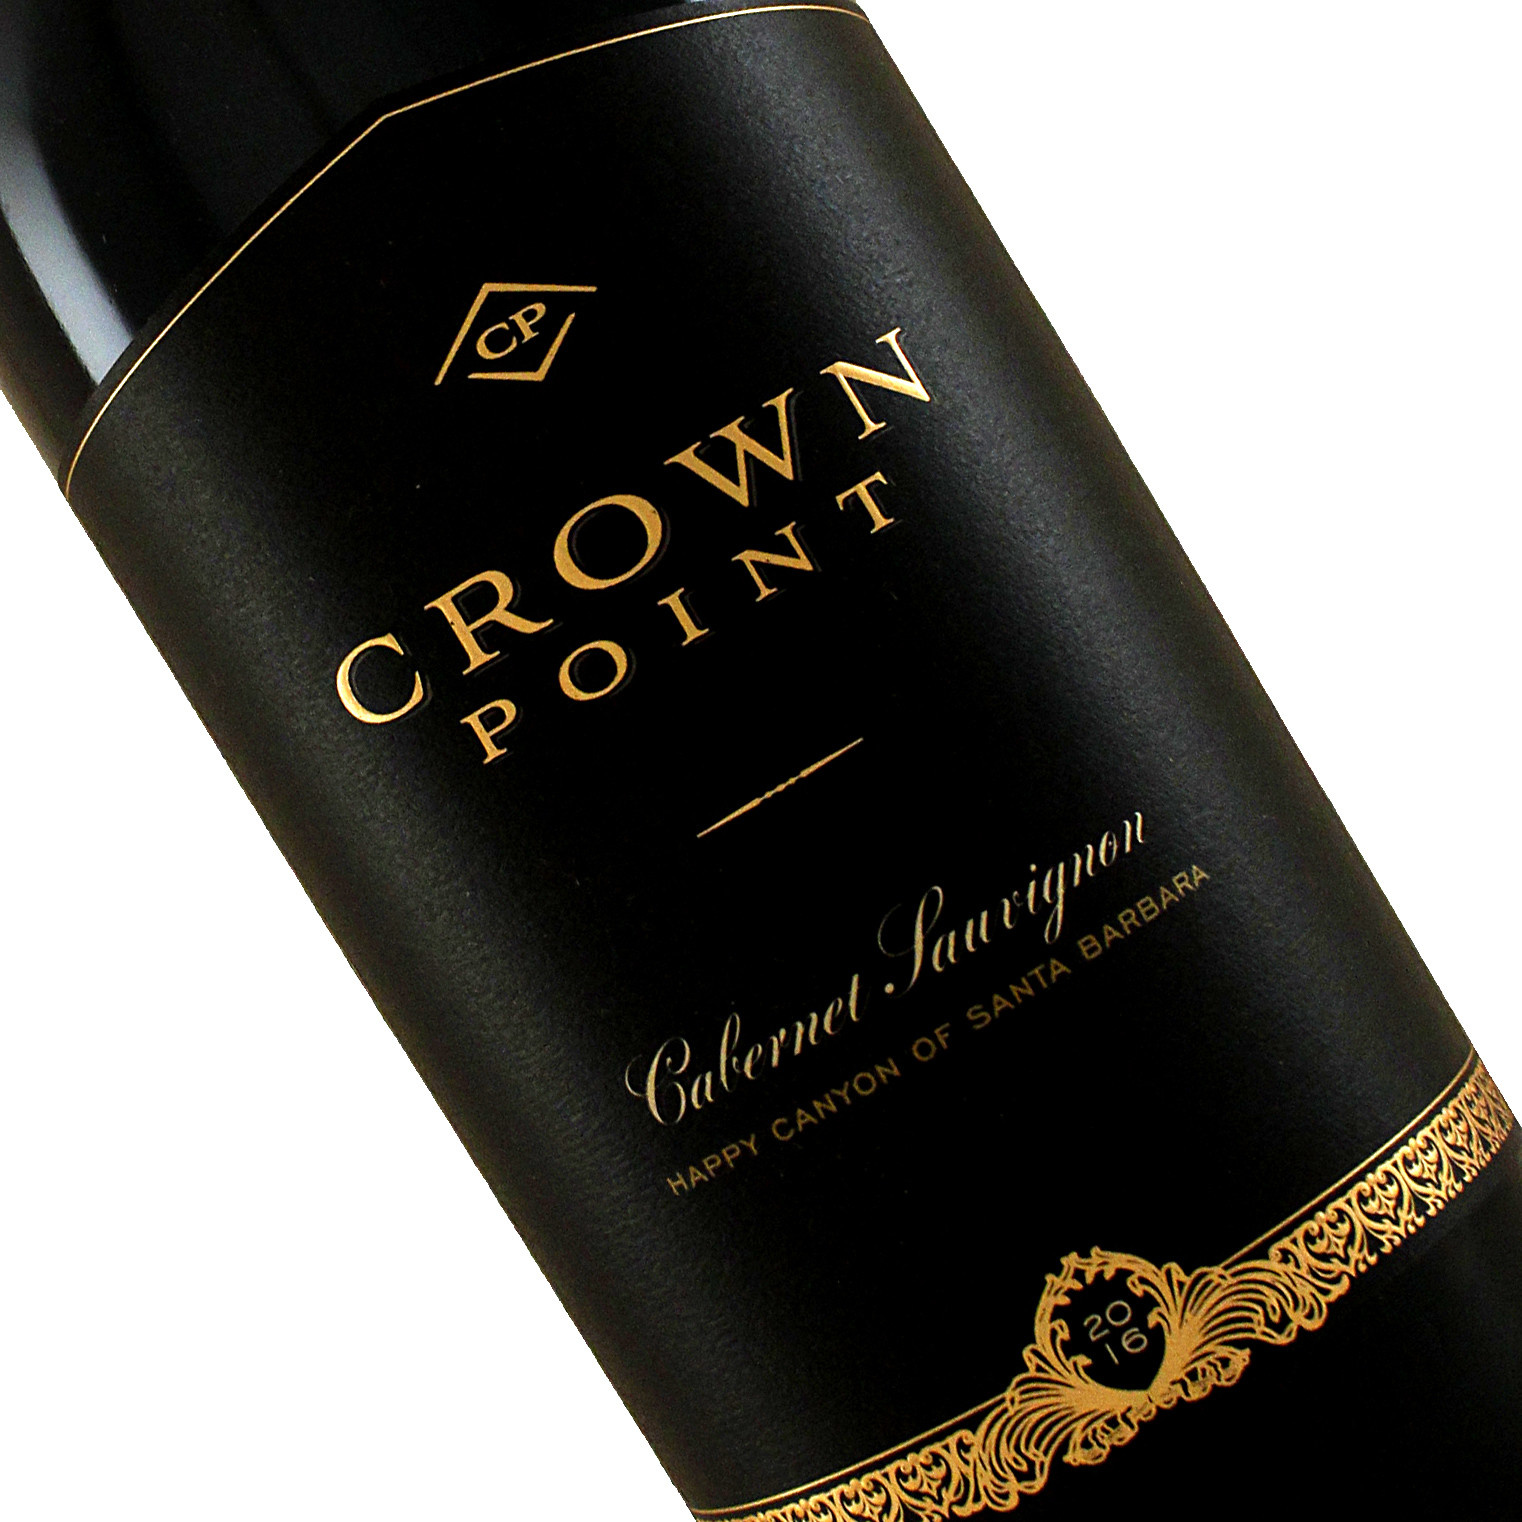 Crown Point 2016 Cabernet Sauvignon, Happy Canyon of Santa Barbara